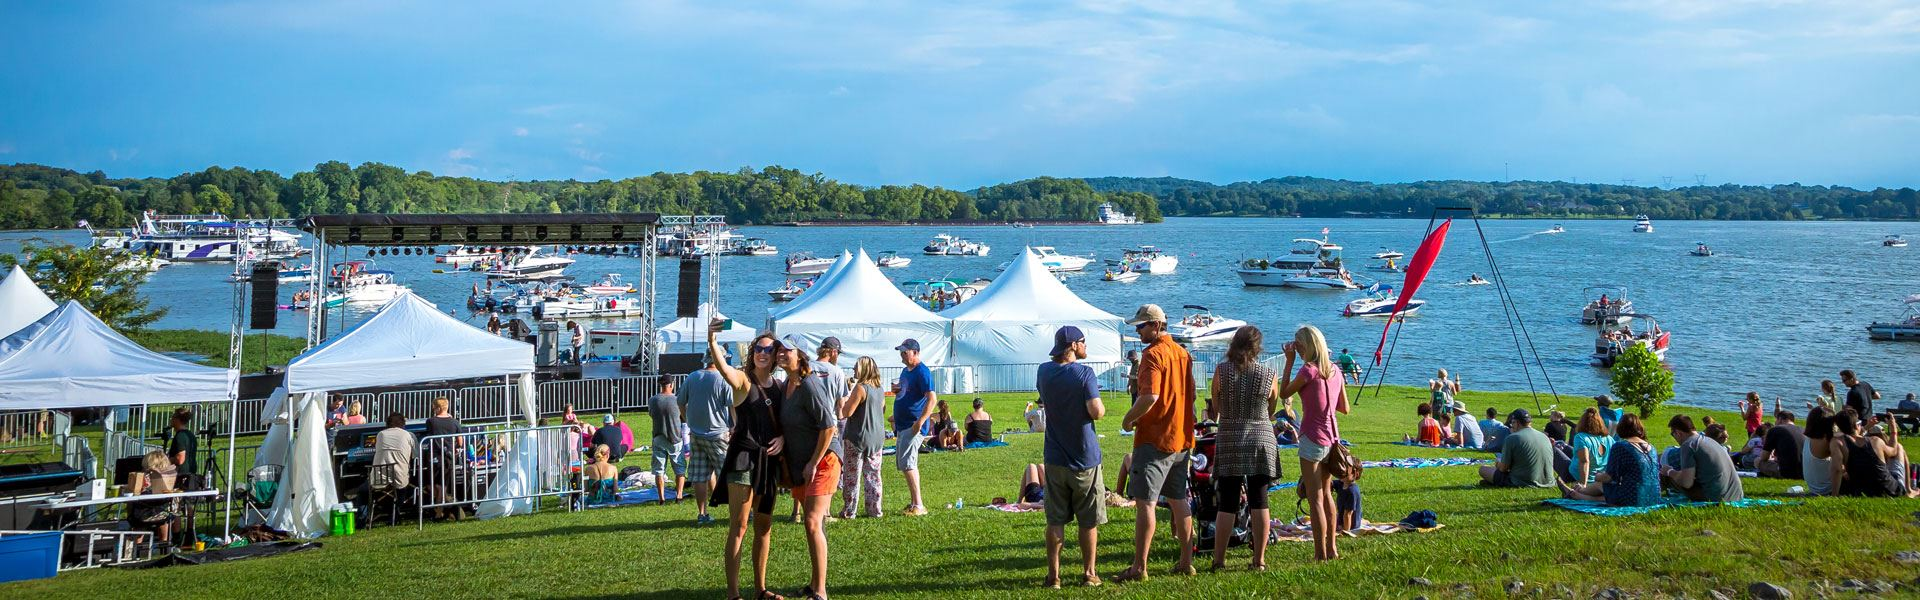 Fire on the Water Music Festival Lakefront View